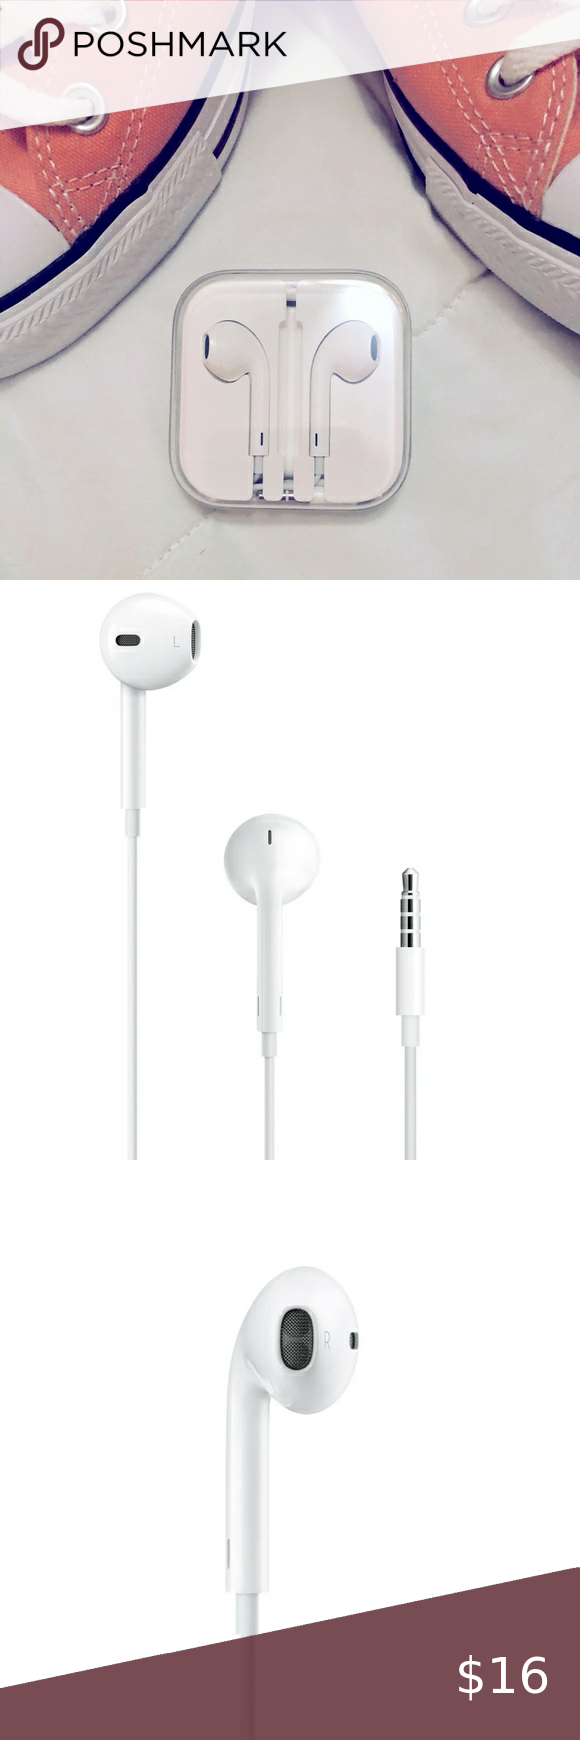 Apple Iphone Headphones Brand New 2 Pack Of Earbuds For Iphone 6s 6 5 5s 4s Plus More Phones Like Android Wired 3 5 Iphone Headphones Headphones Apple Iphone